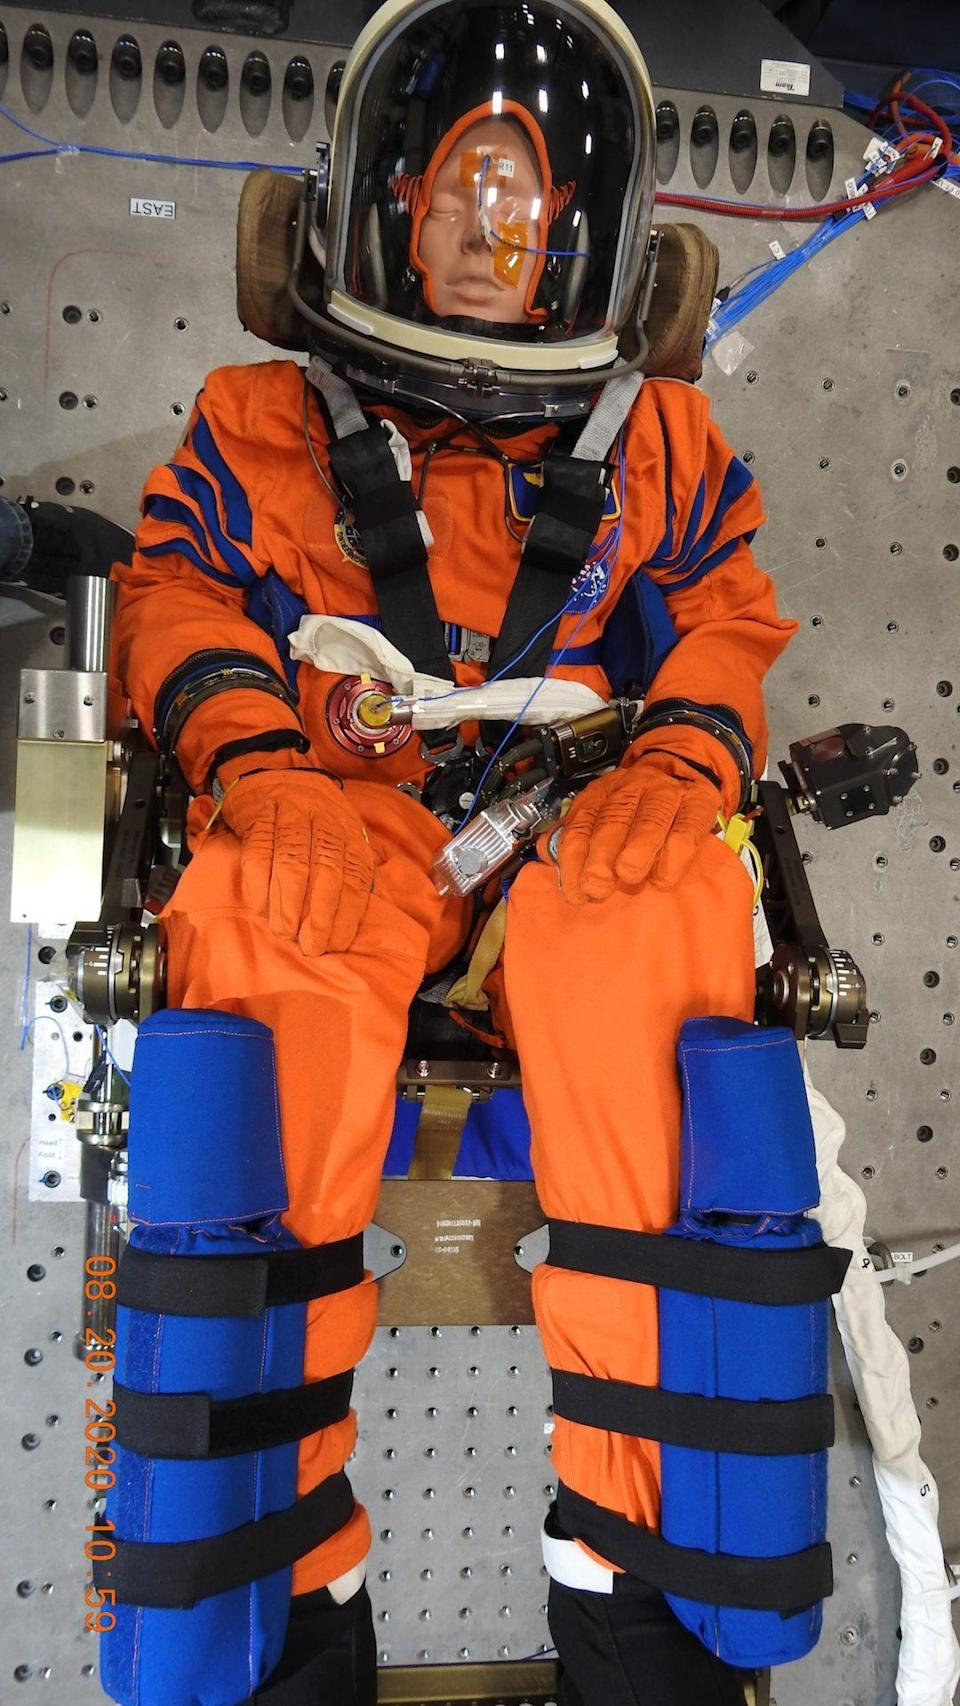 A dummy in an orange space suit sitting in a chair